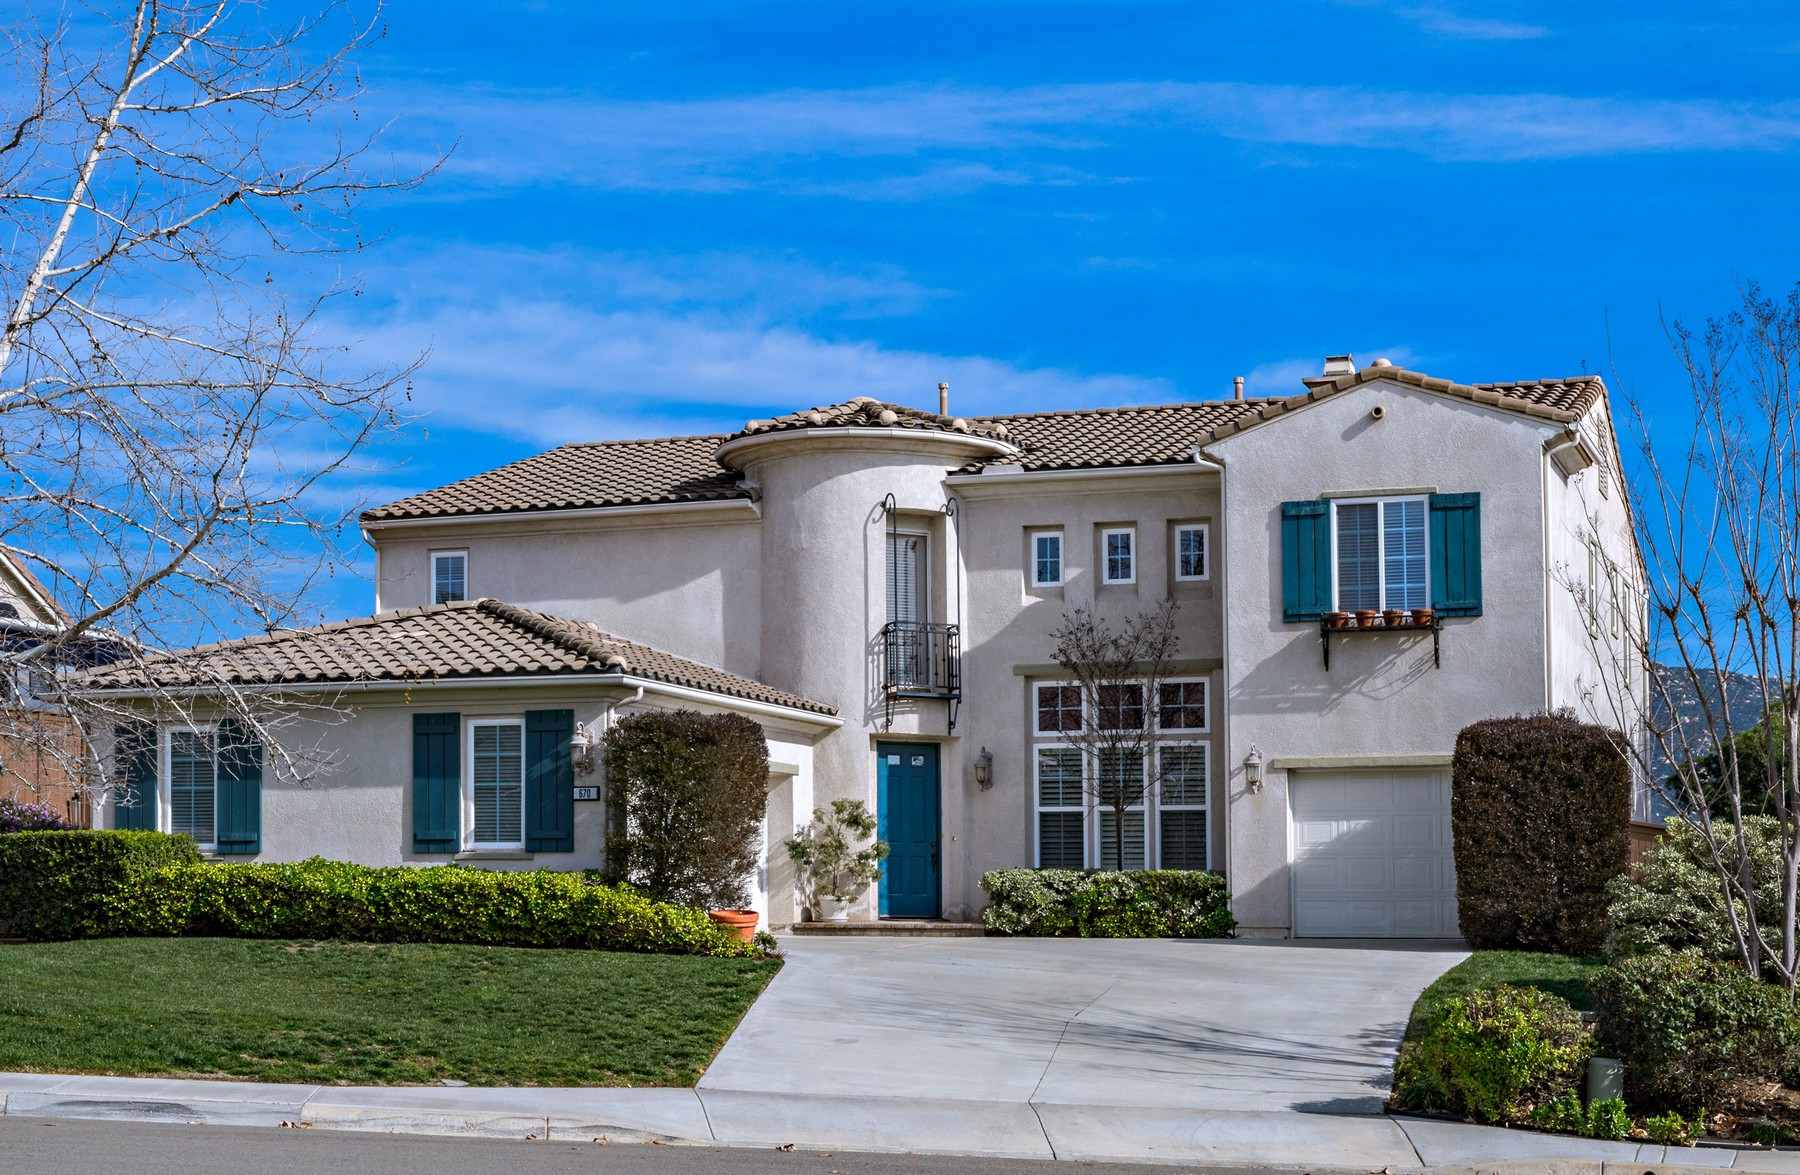 Single Family Home for Sale at 670 South Hidden Trails Road Escondido, California 92027 United States